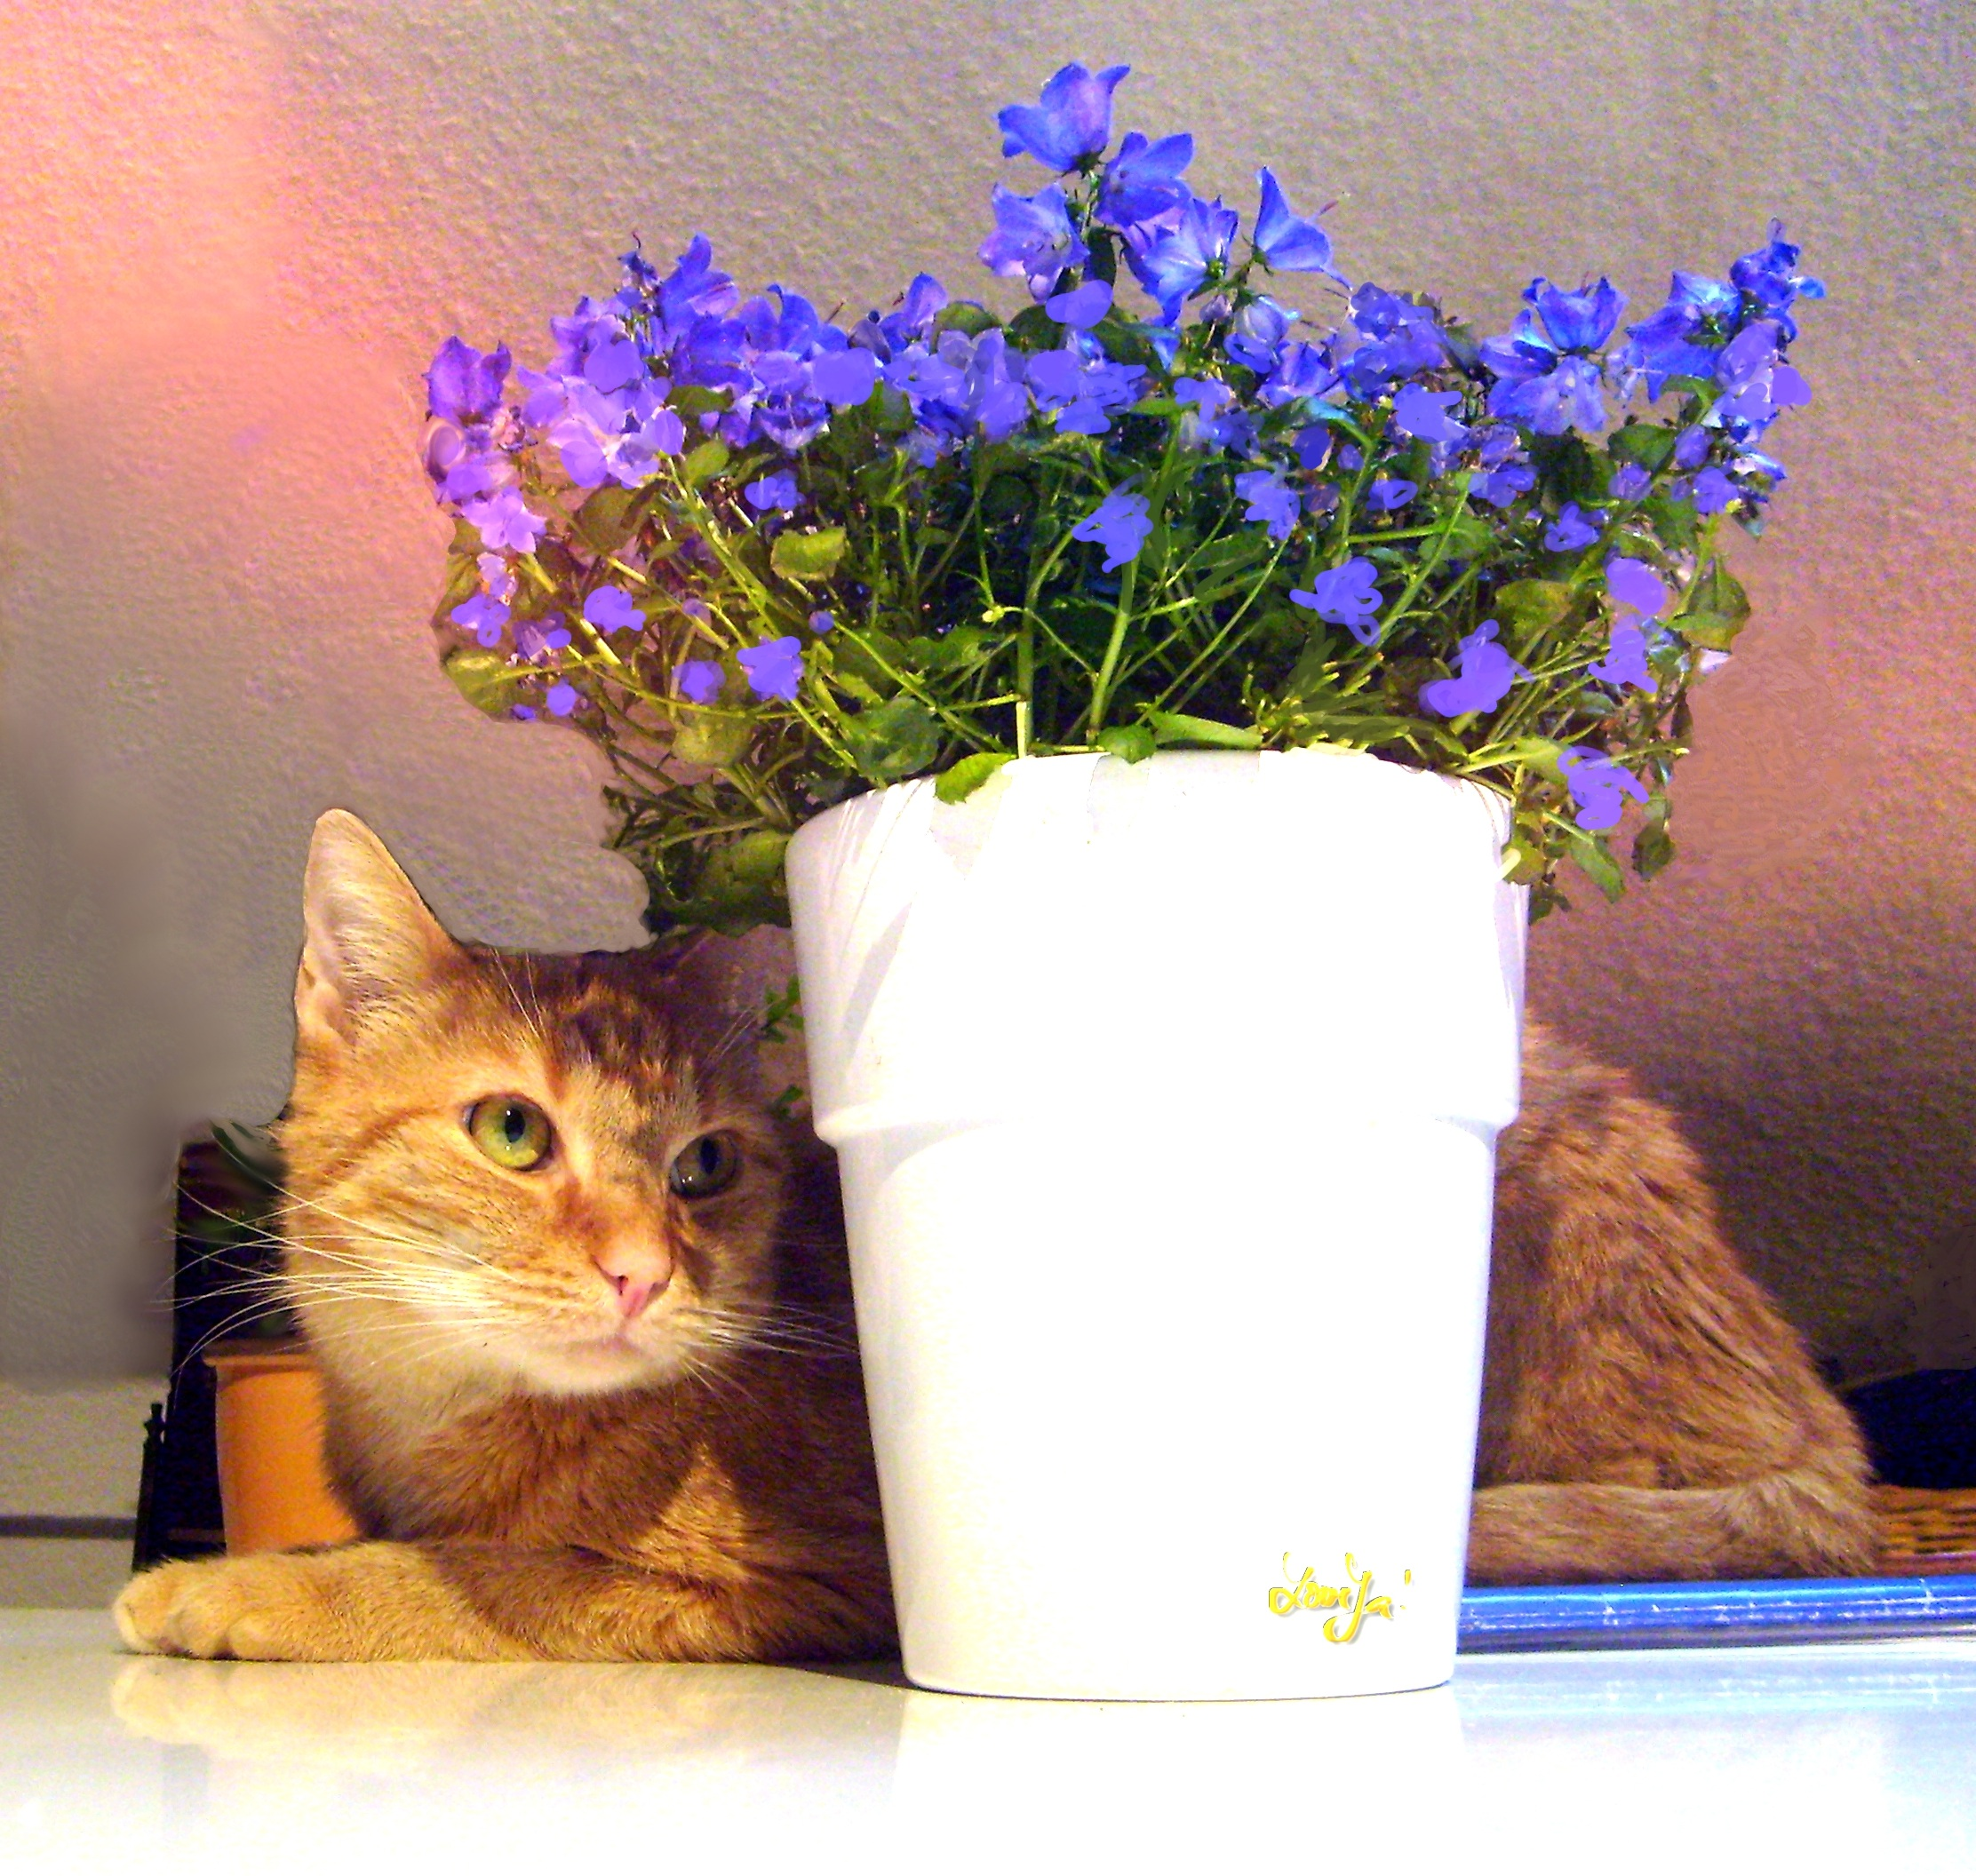 Cat with the pot photo